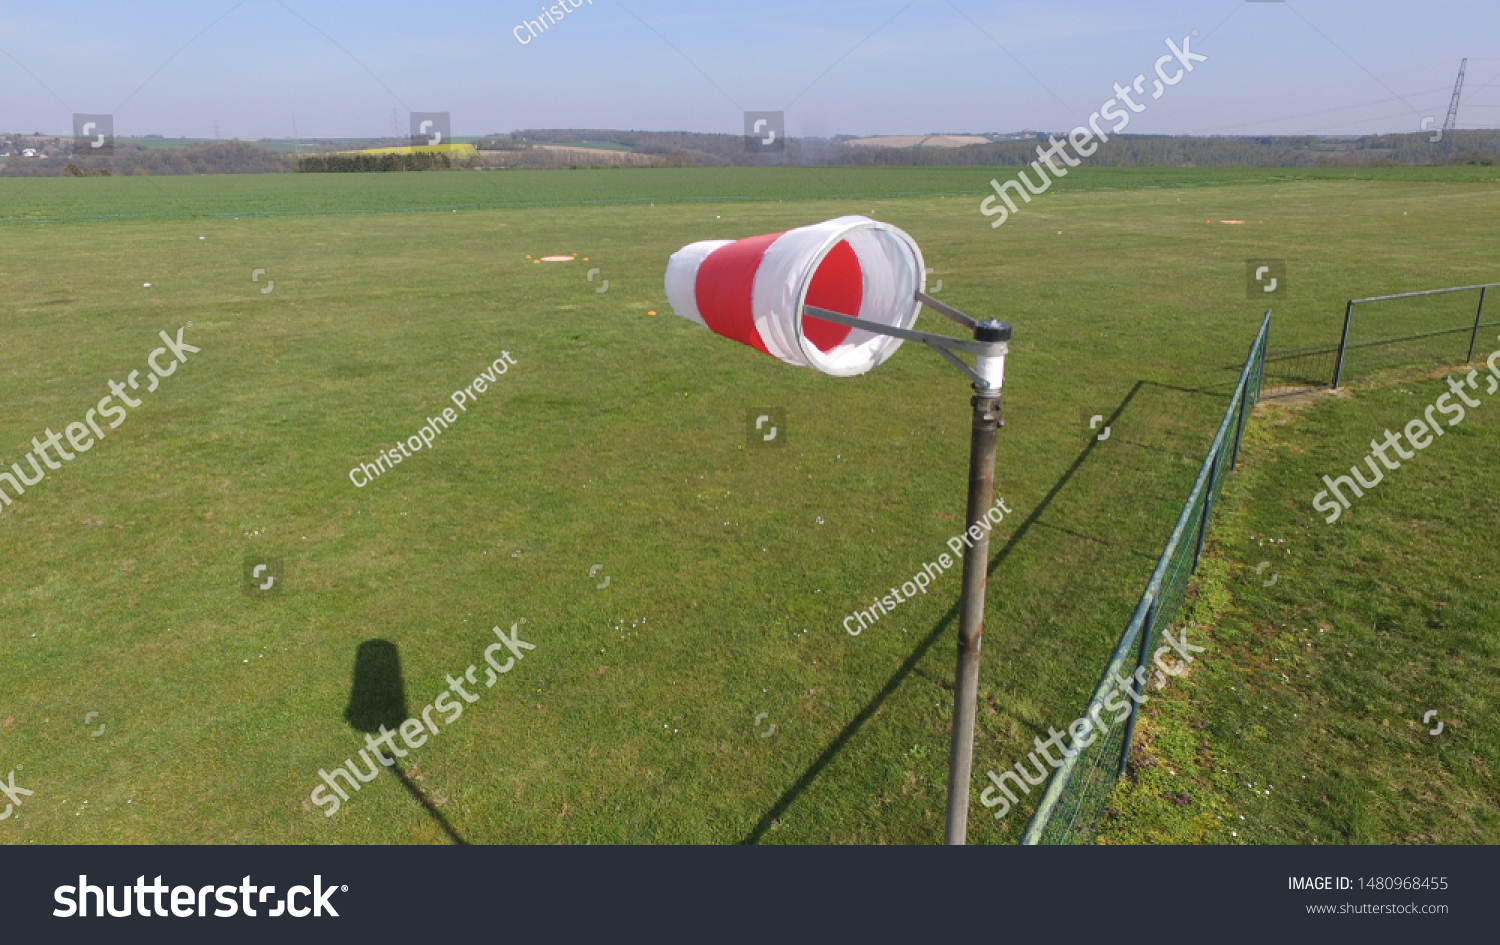 windsock on a windy day #1480968455